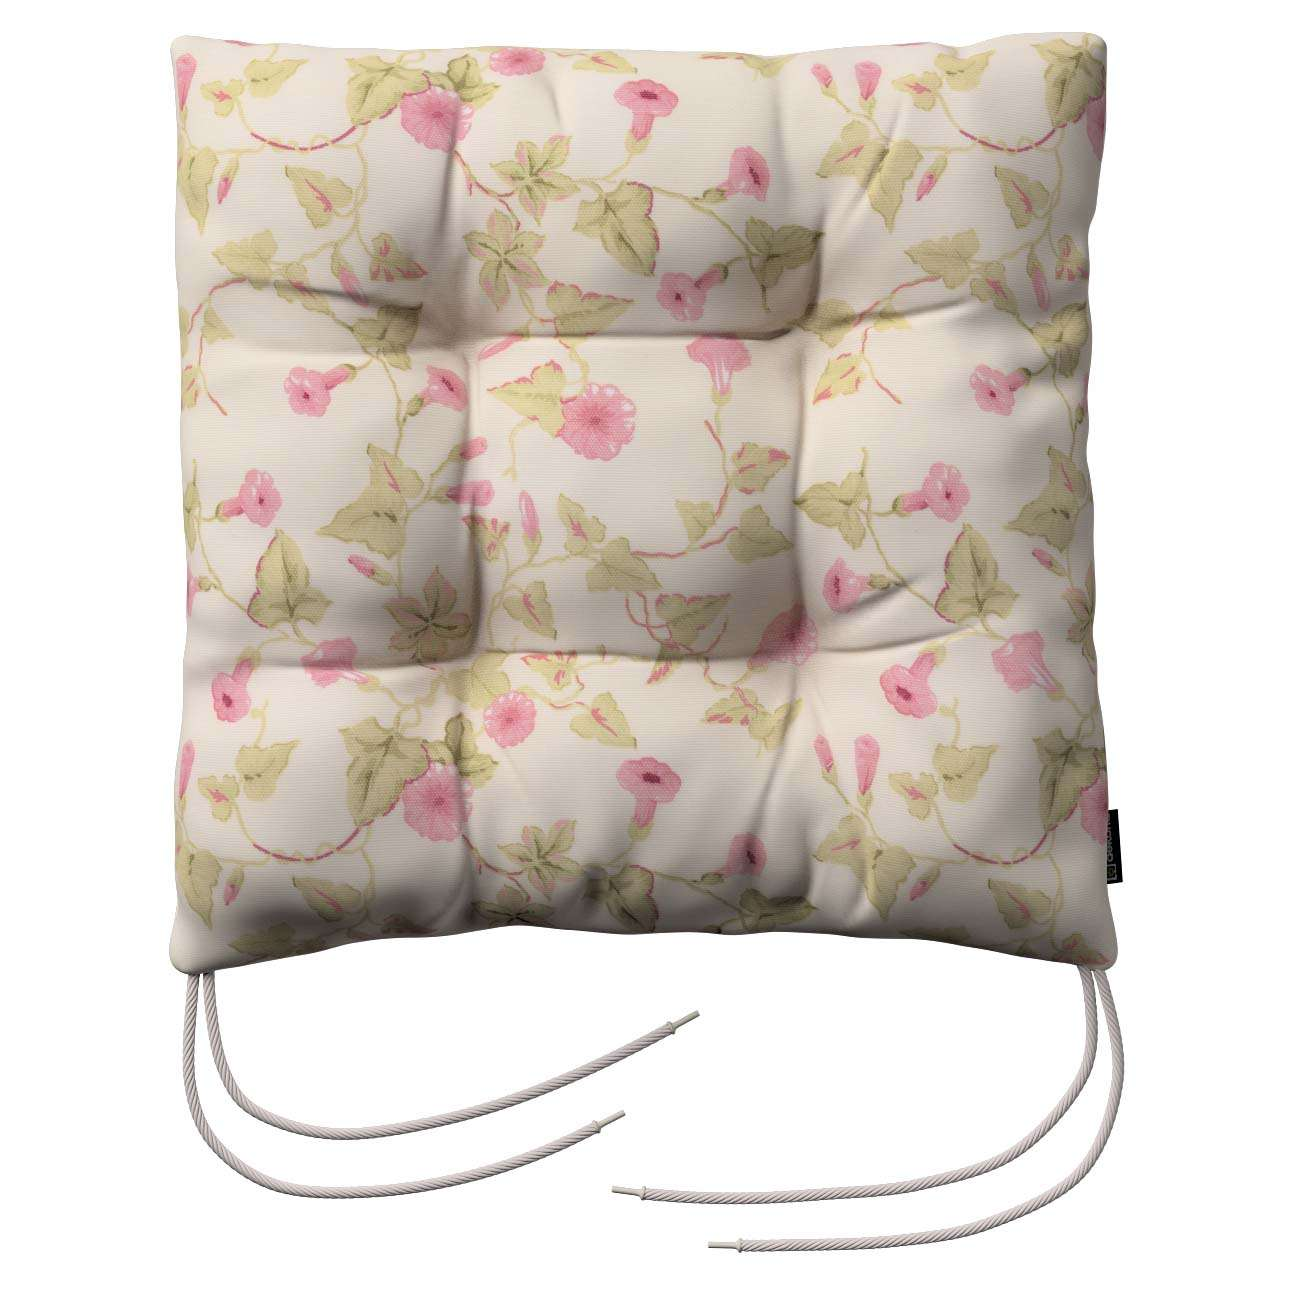 Jack seat pad with ties in collection Mirella, fabric: 140-41